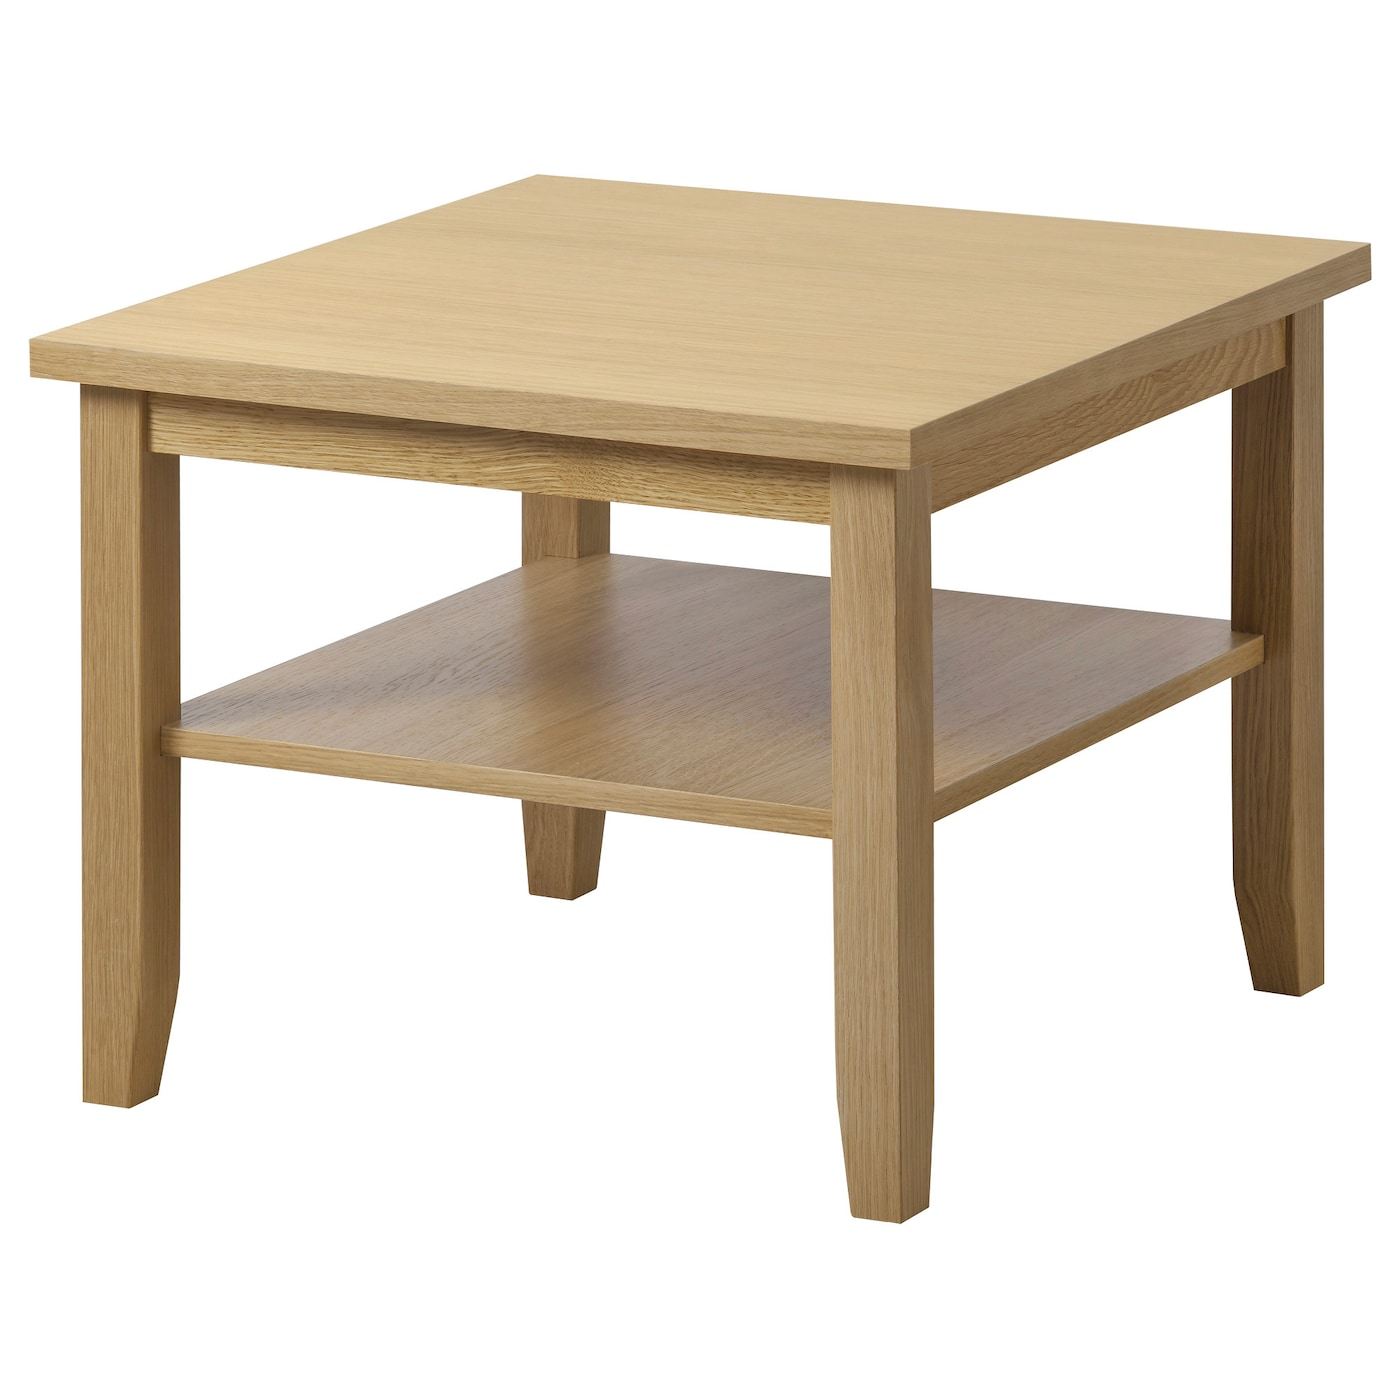 Skoghall coffee table oak 55x55 cm ikea for Table x and y